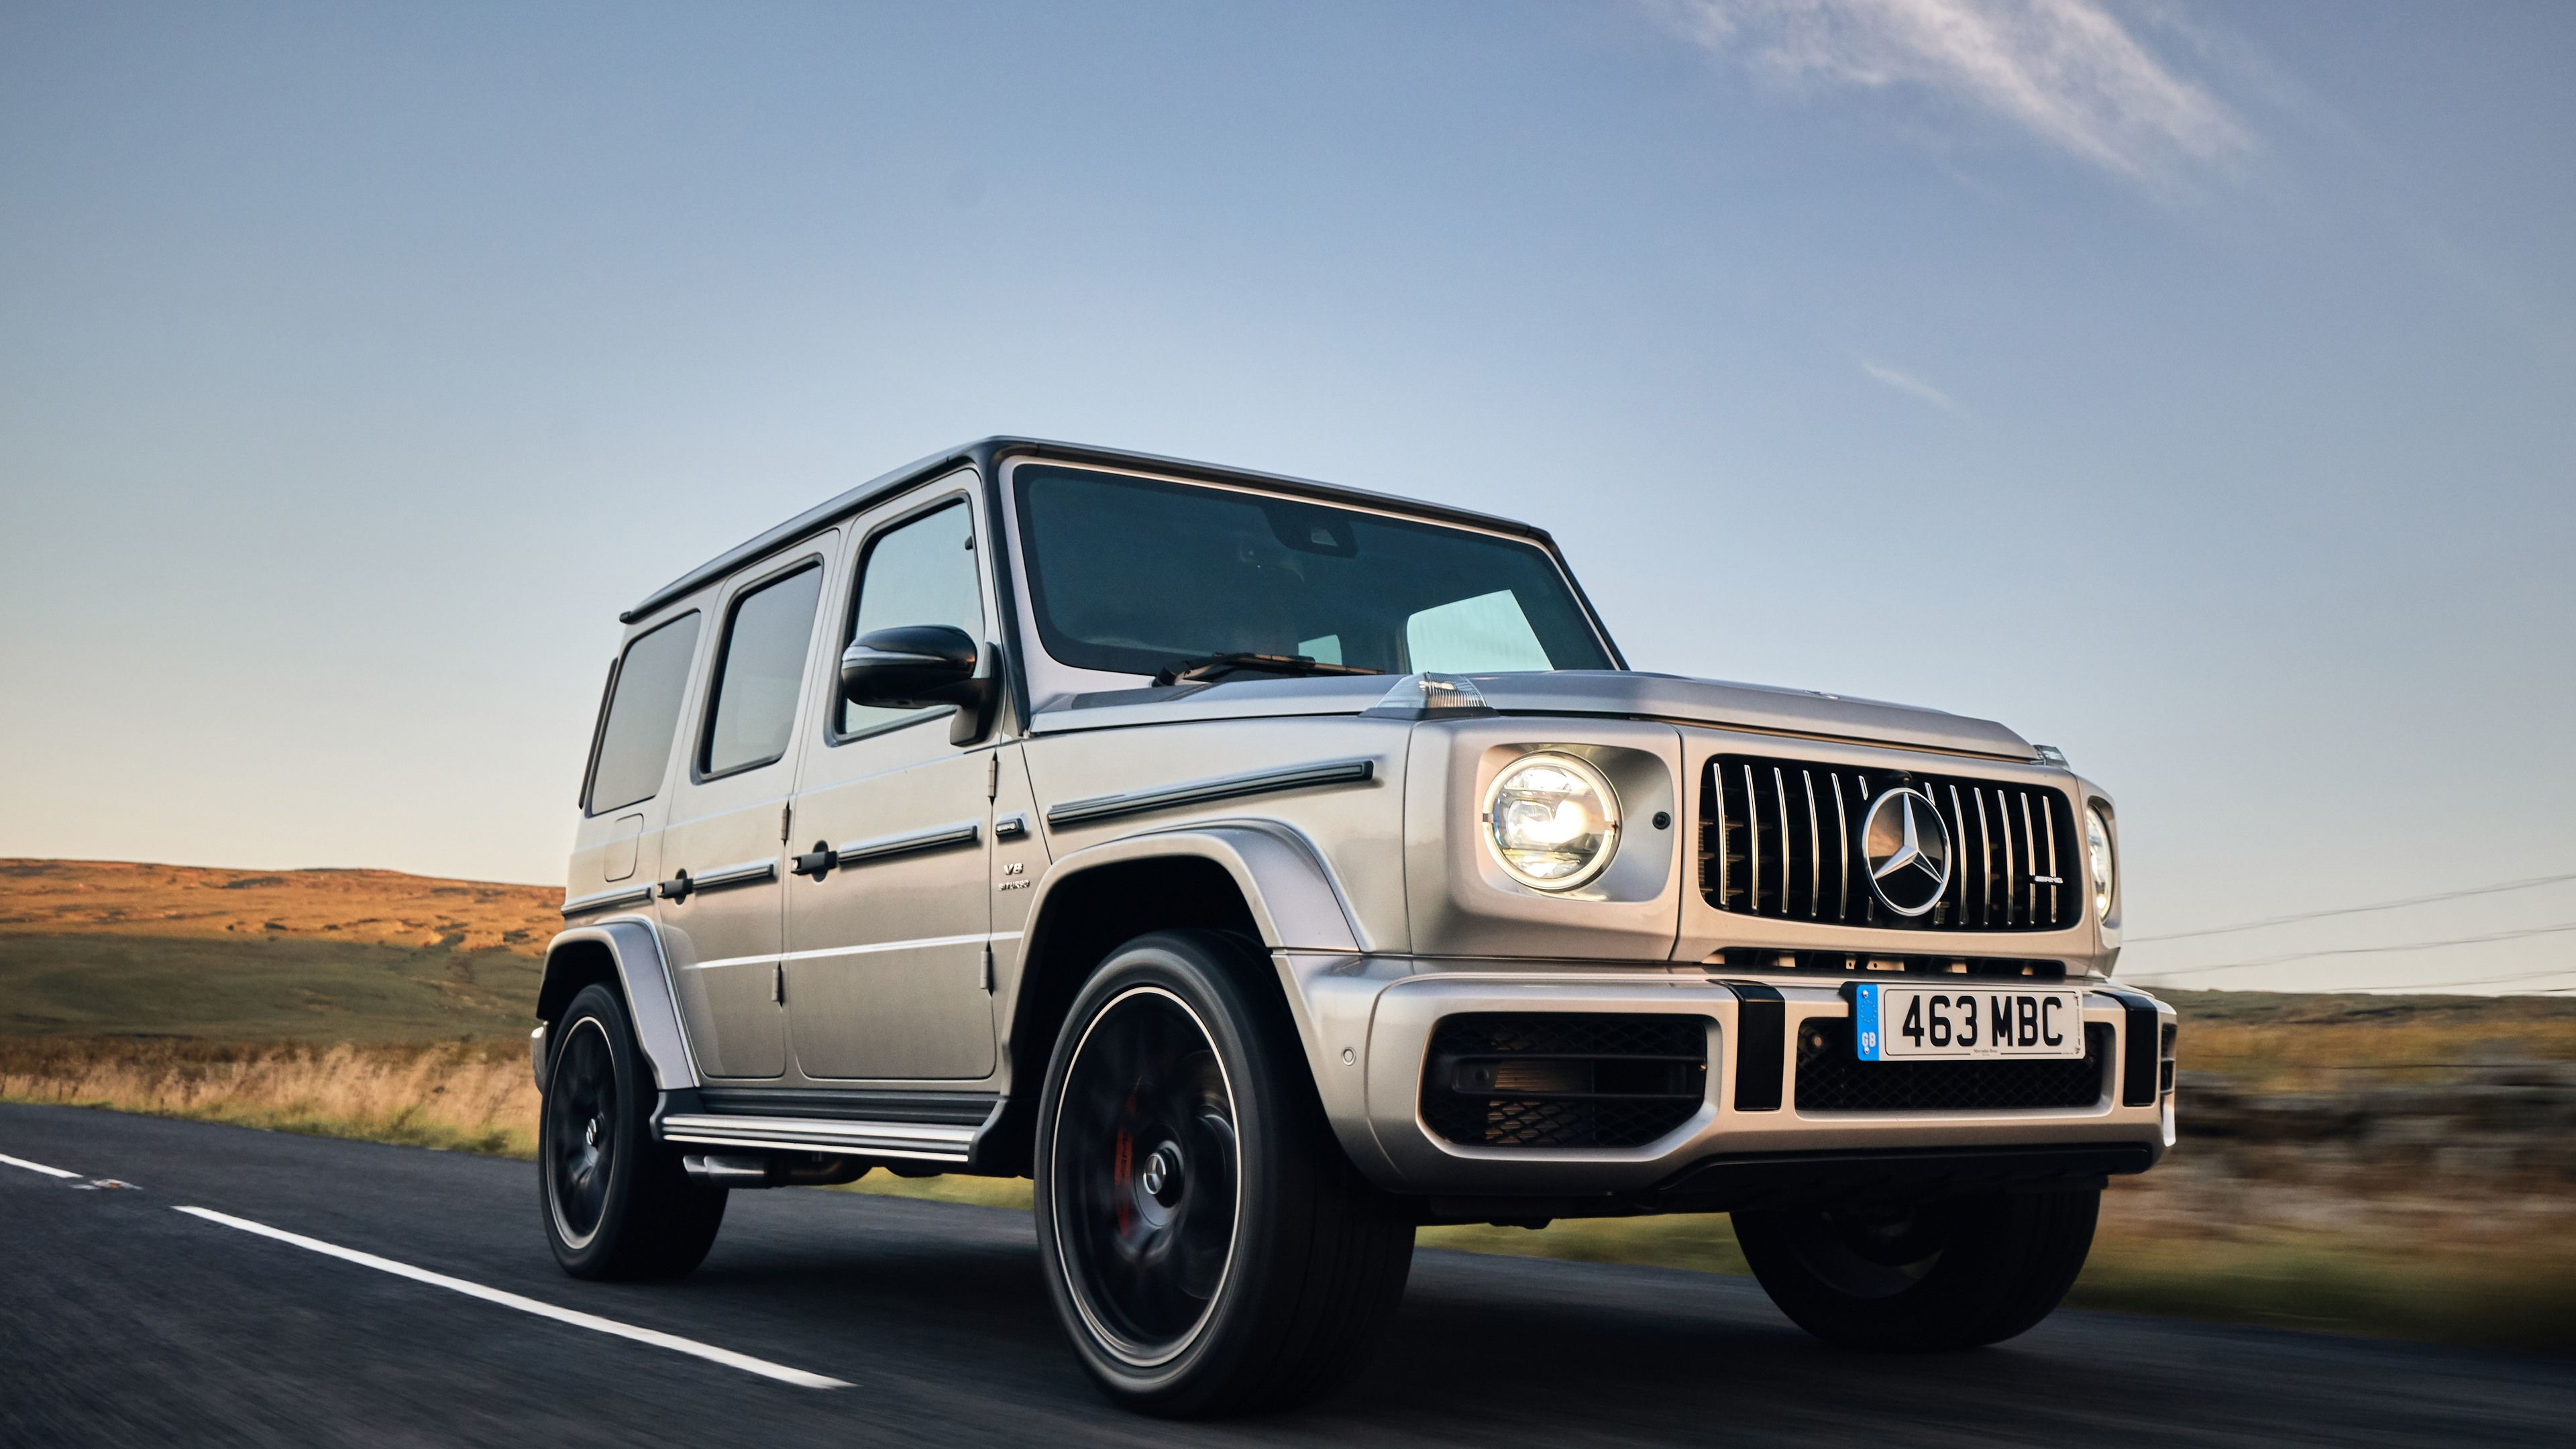 Mercedes Amg G 63 Wallpapers Top Free Mercedes Amg G 63 Backgrounds Wallpaperaccess